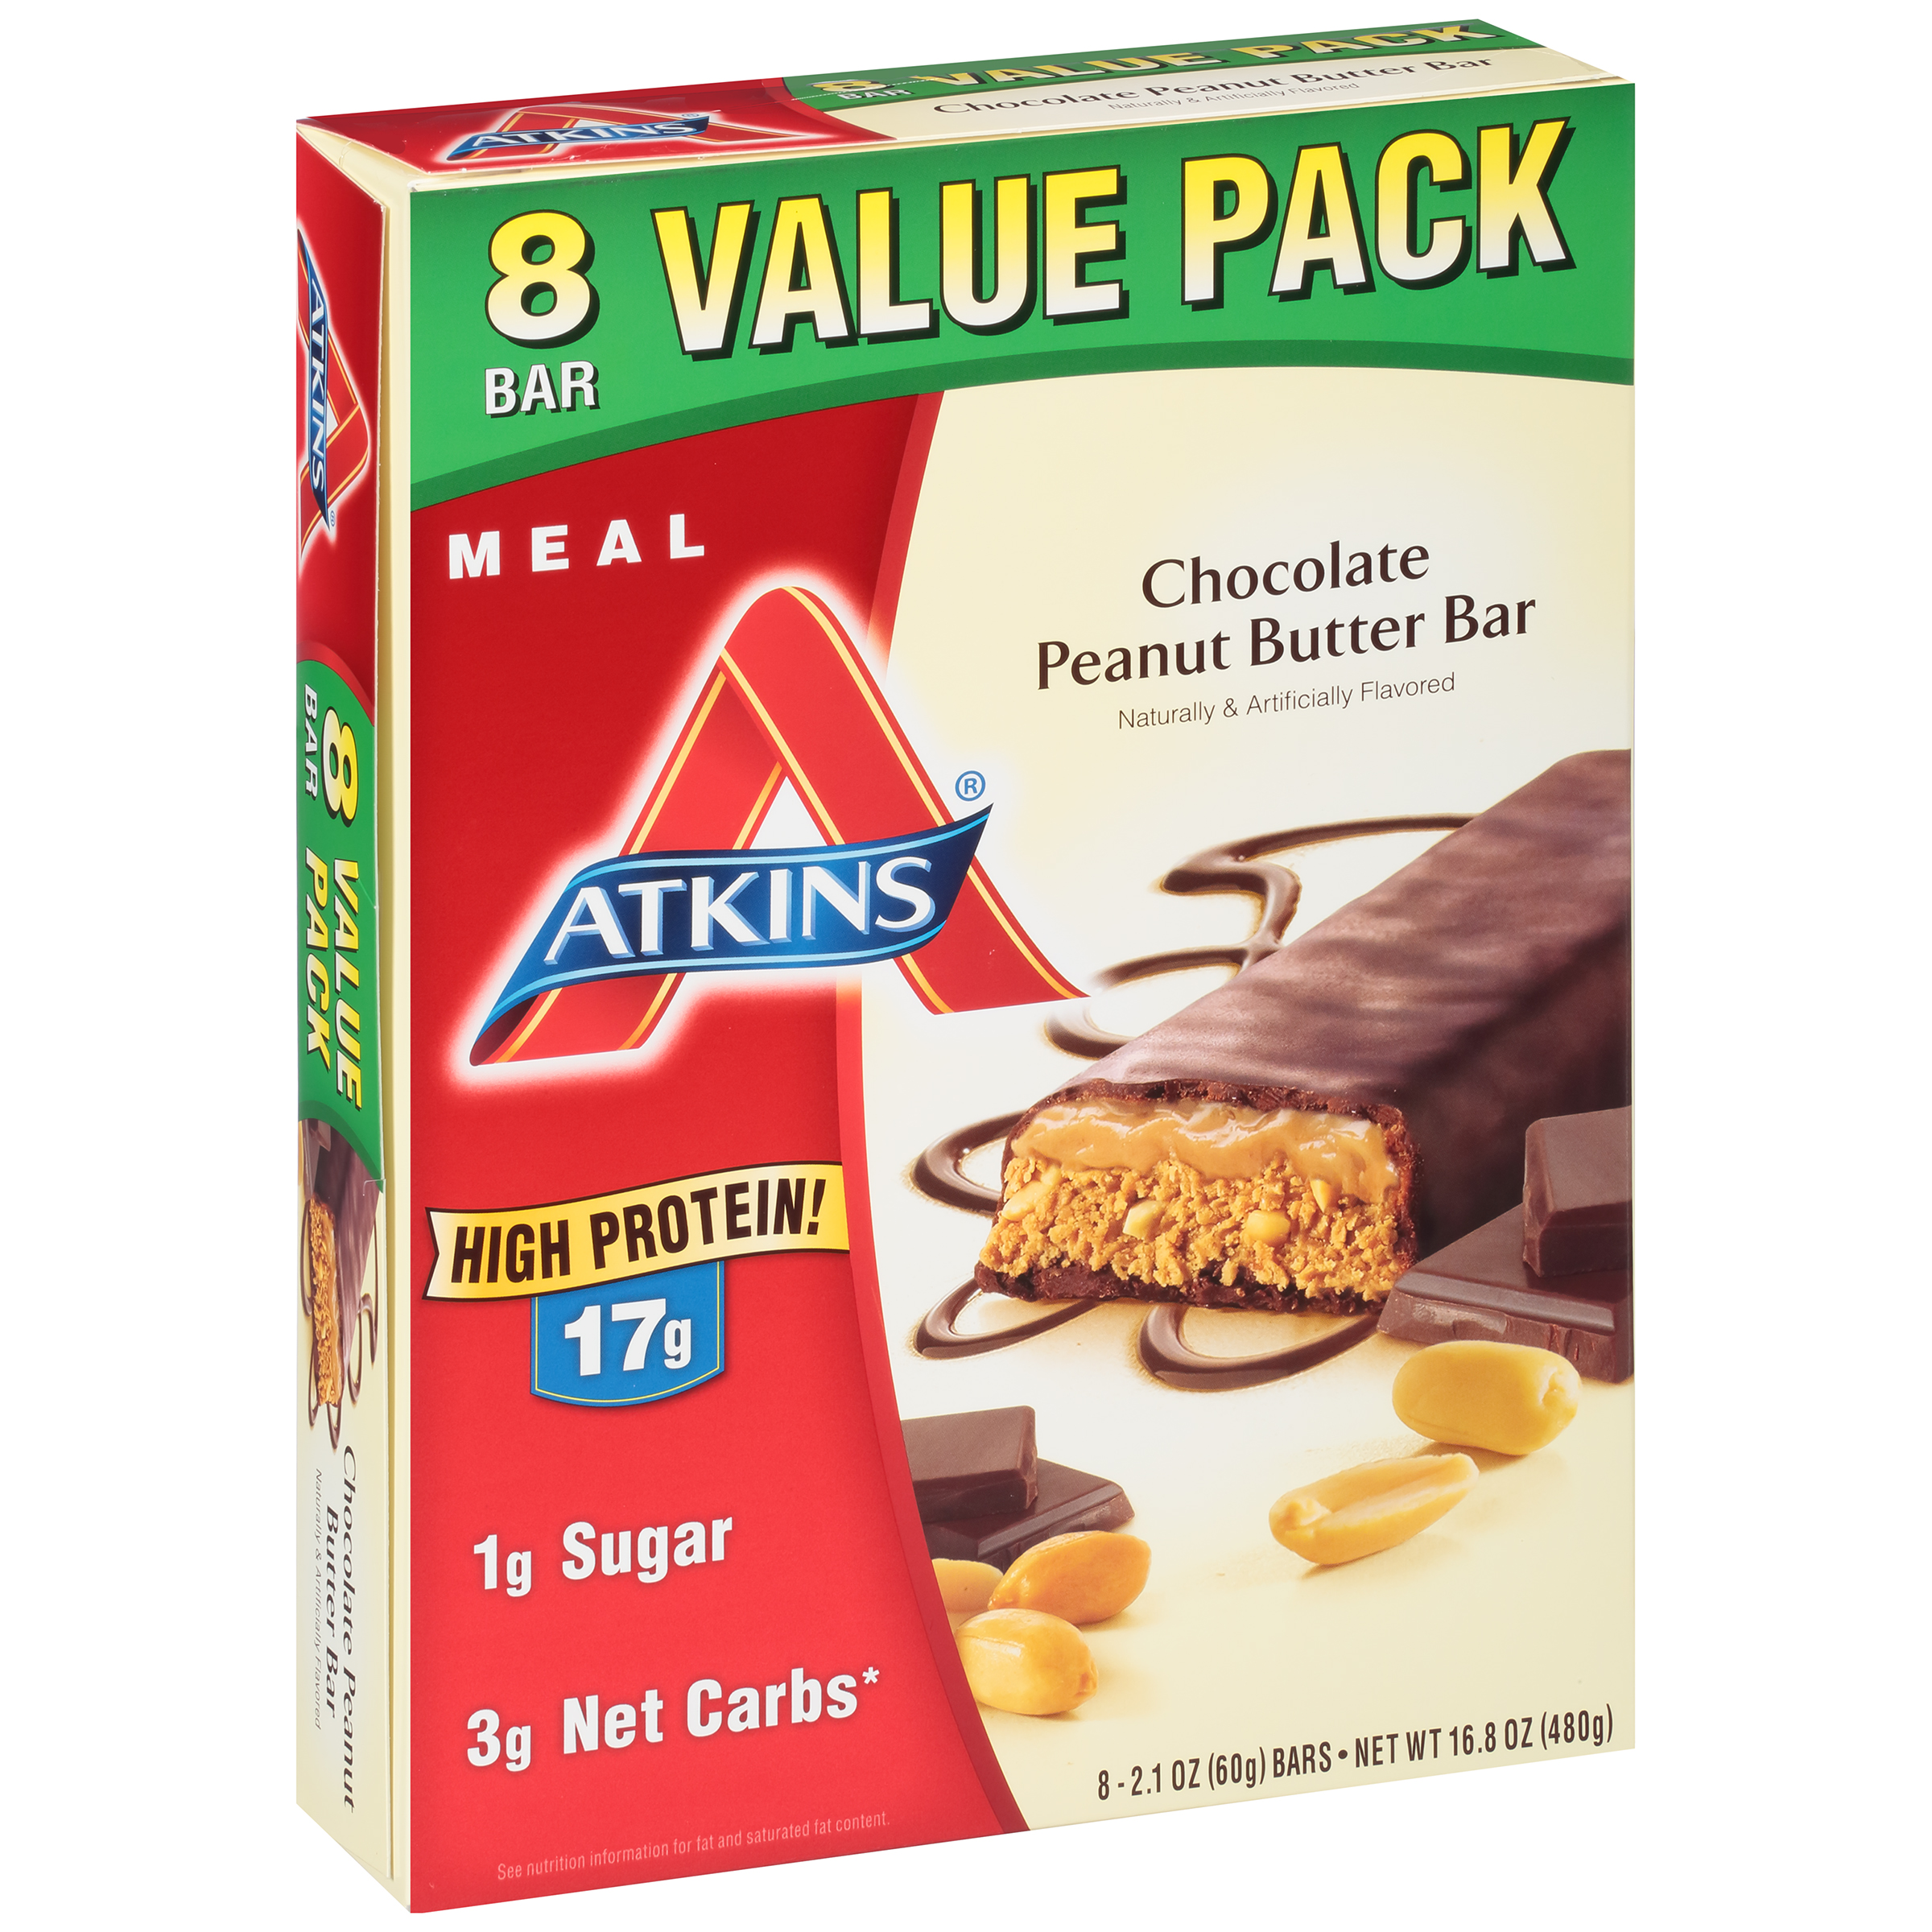 Atkins Meal Chocolate Peanut Butter Bars, 2.1 oz, 8 count